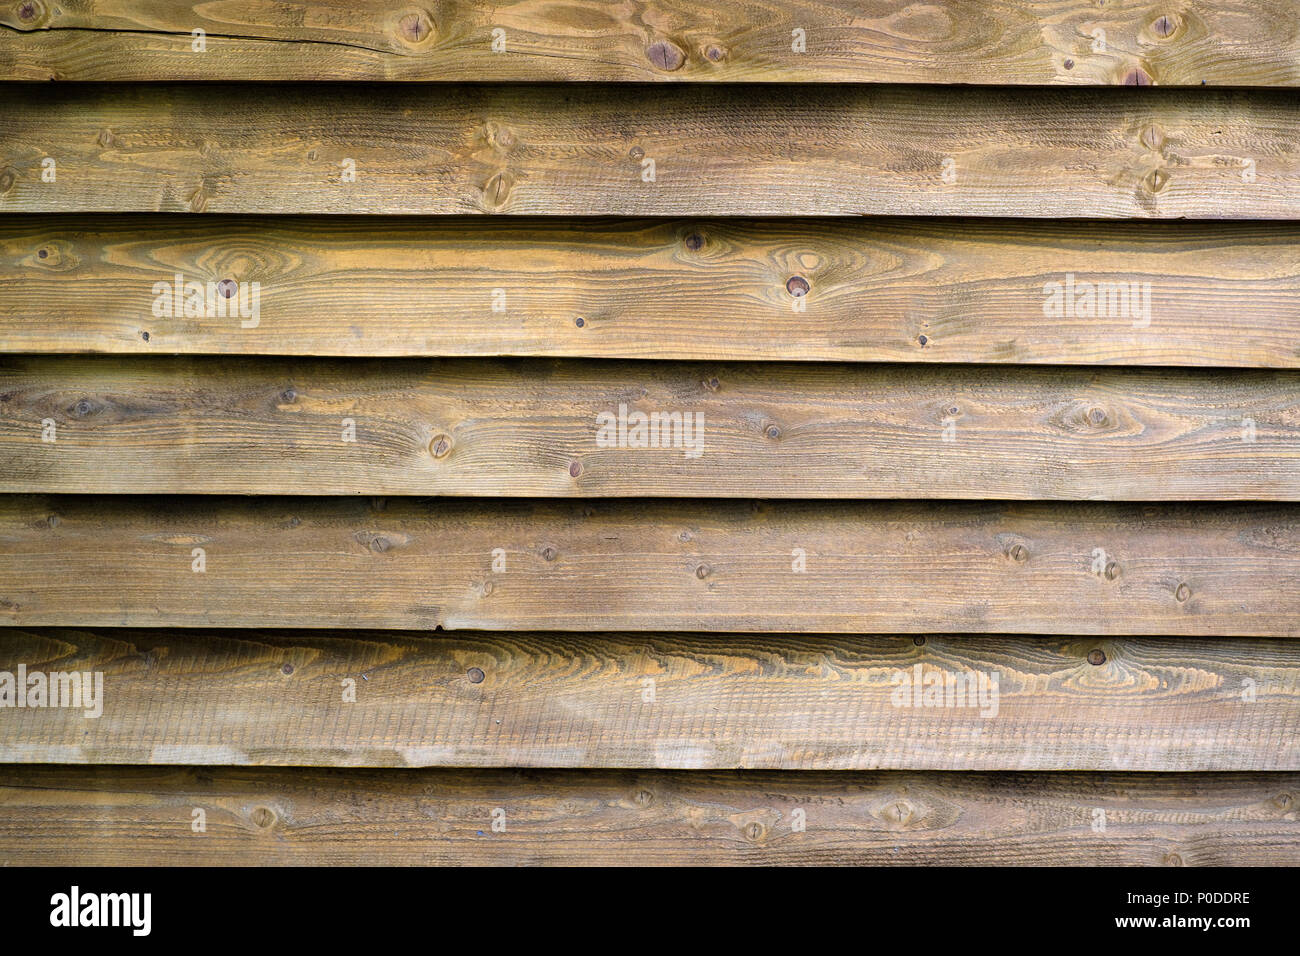 Texture of wood plank - Stock Image